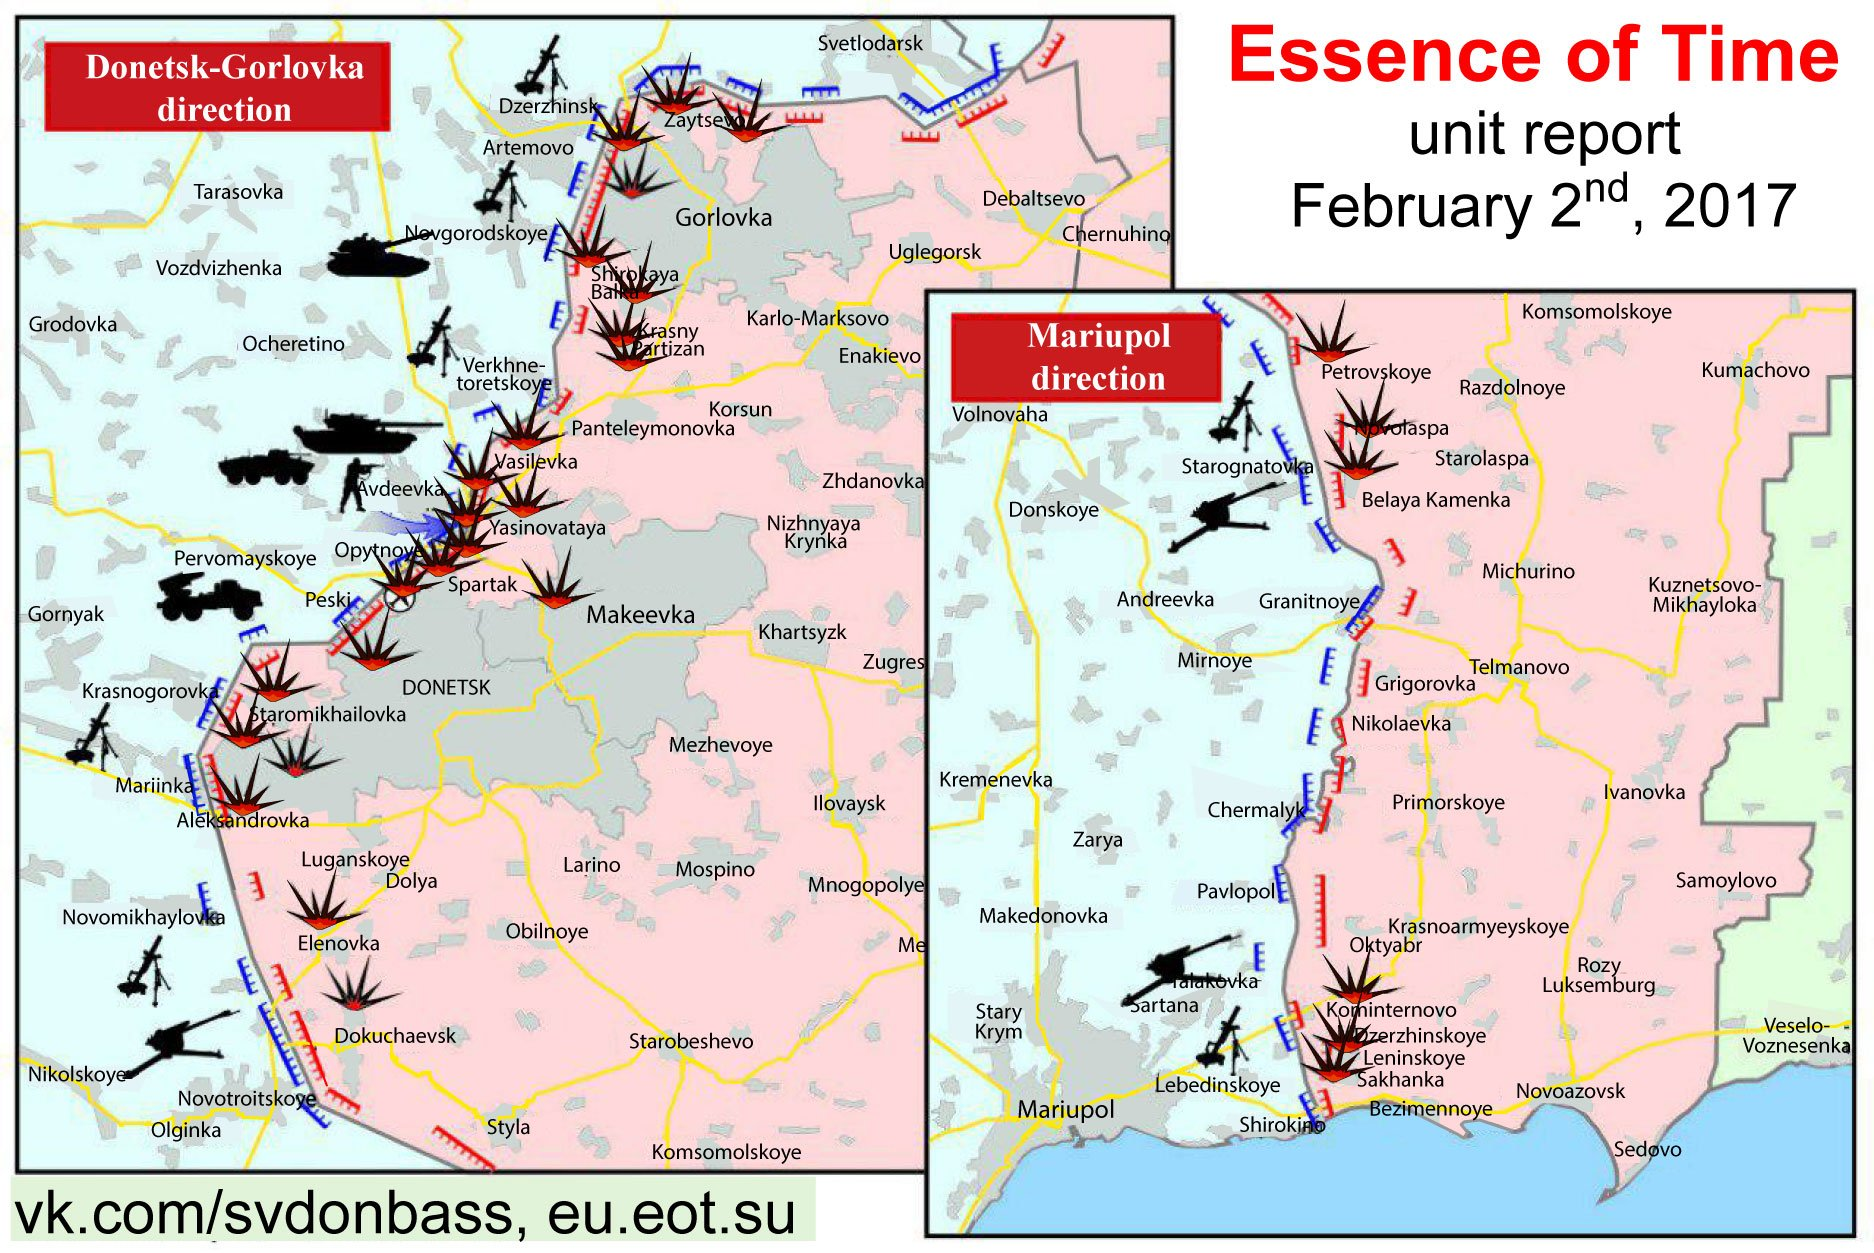 Map of contact line separating Ukraine from the Donetsk Peoples